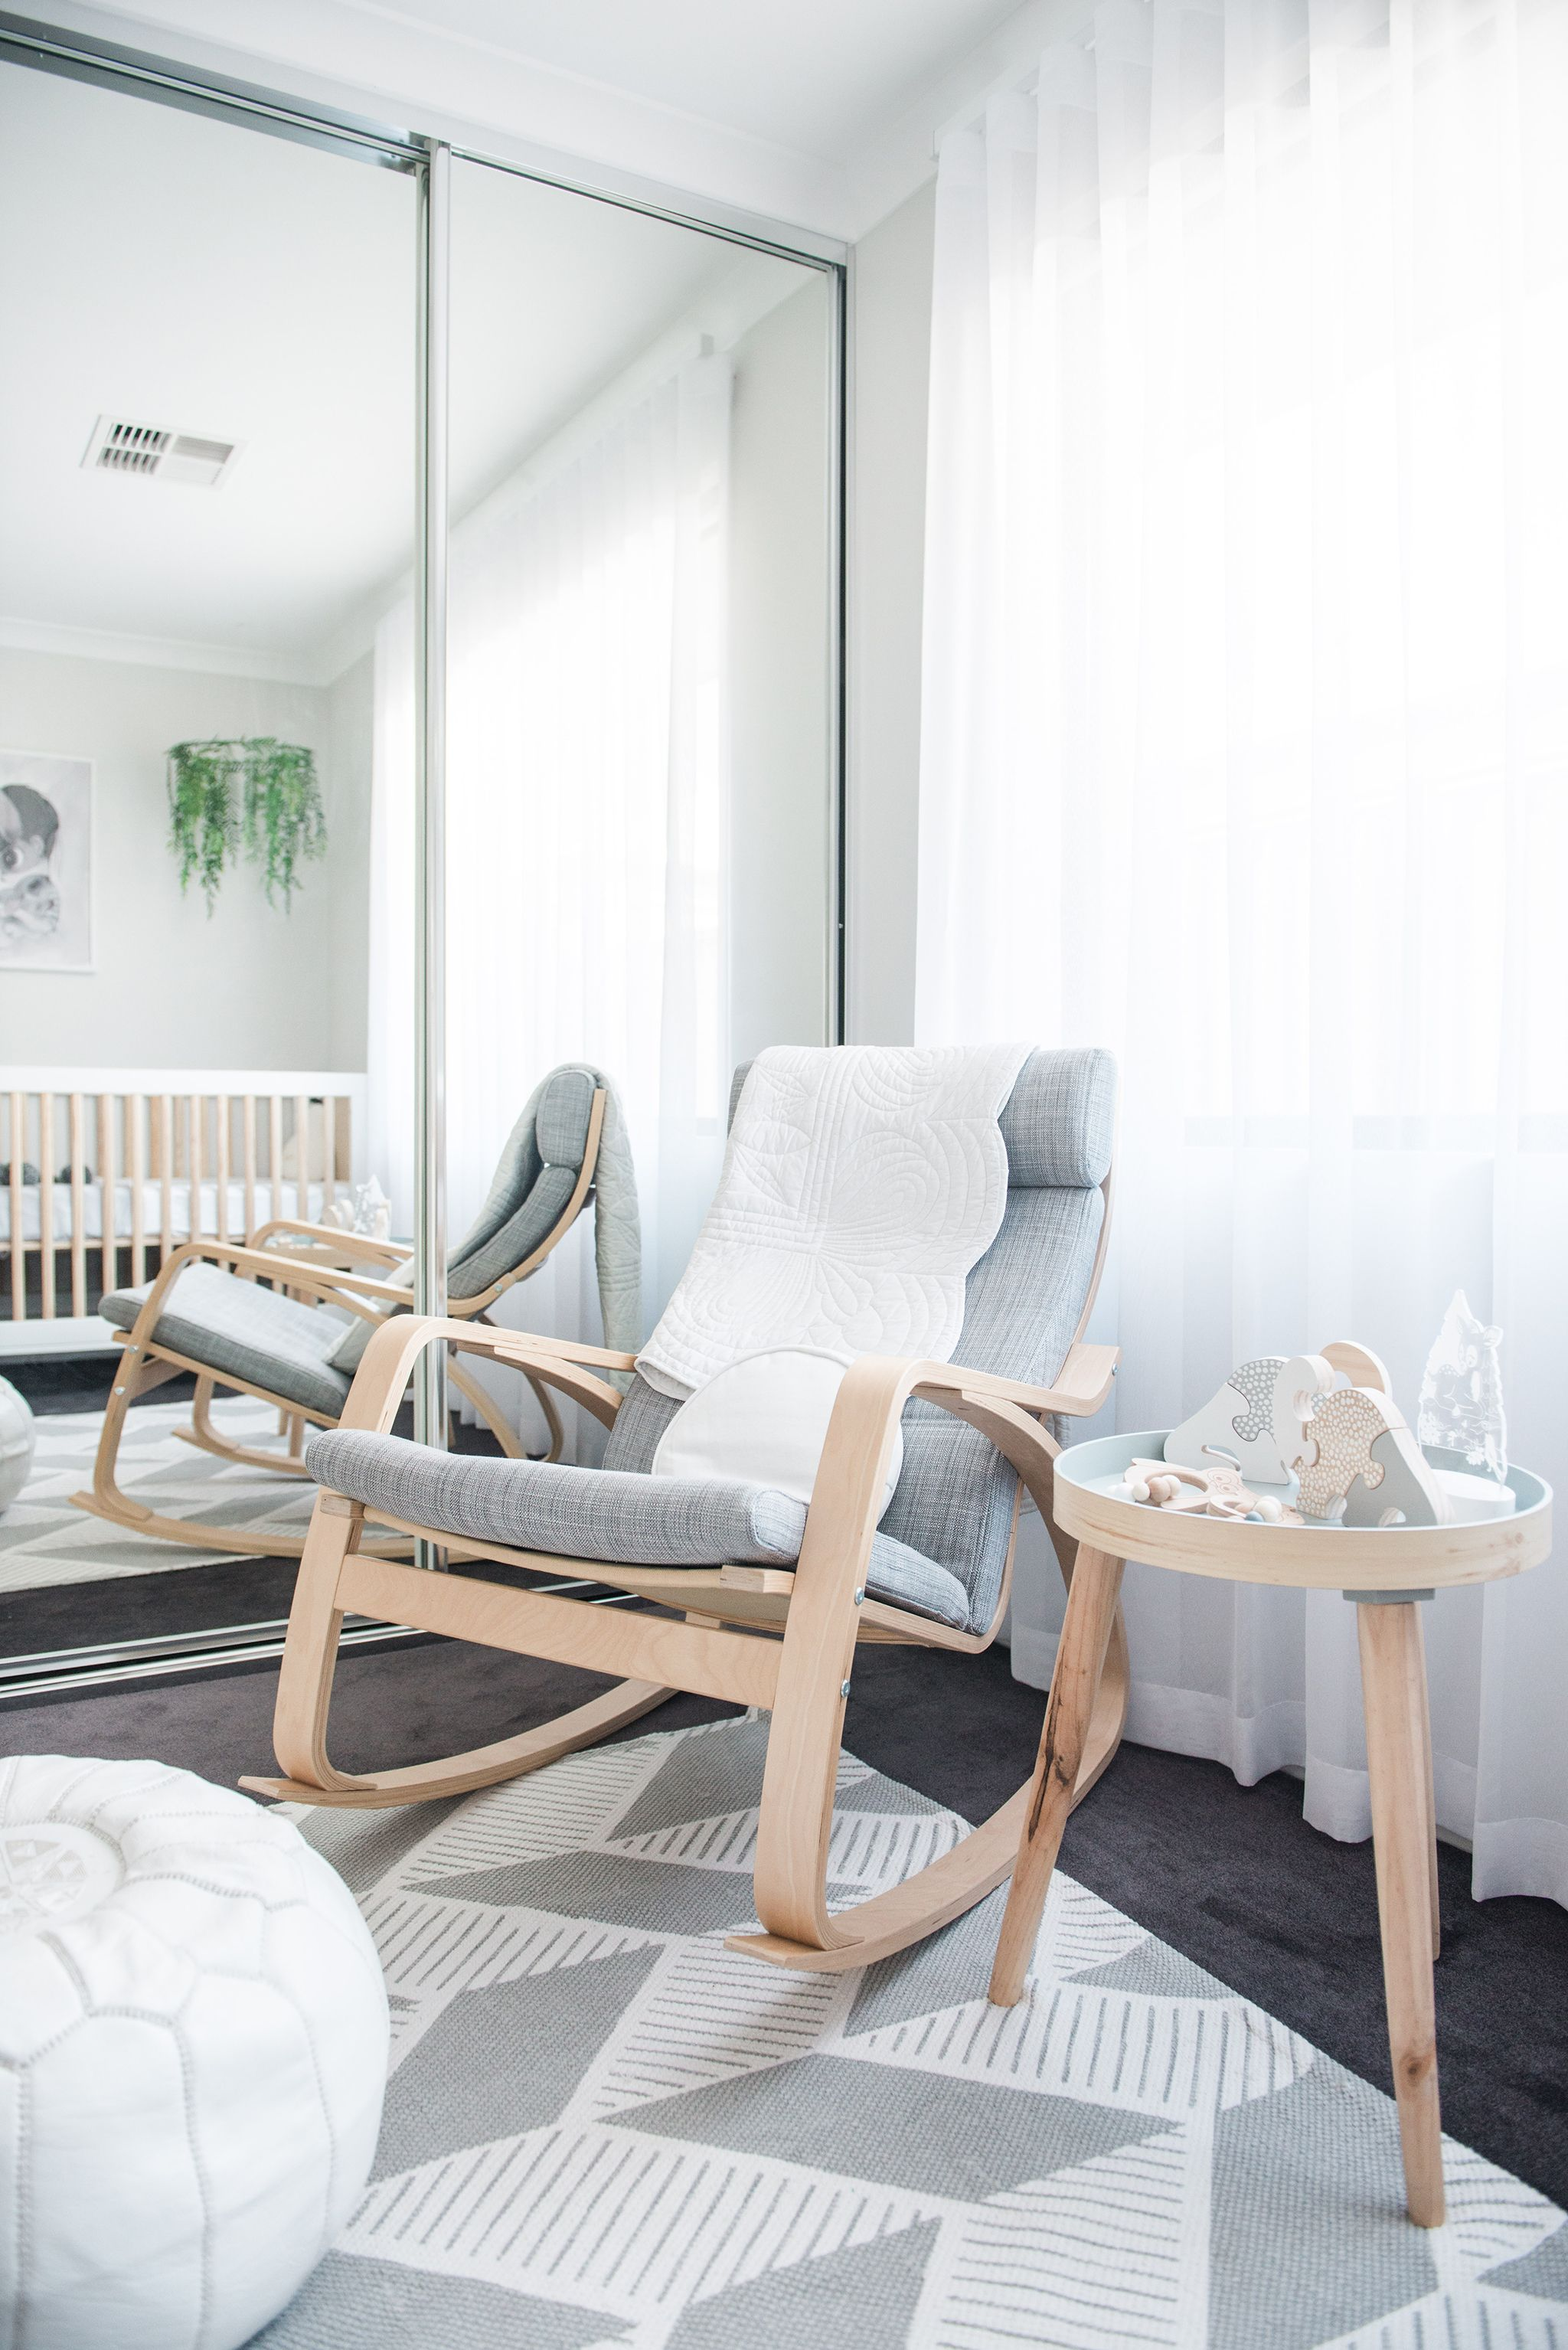 Amazing In The Nursery With Nashstyling Rocking Chair Nursery Gmtry Best Dining Table And Chair Ideas Images Gmtryco